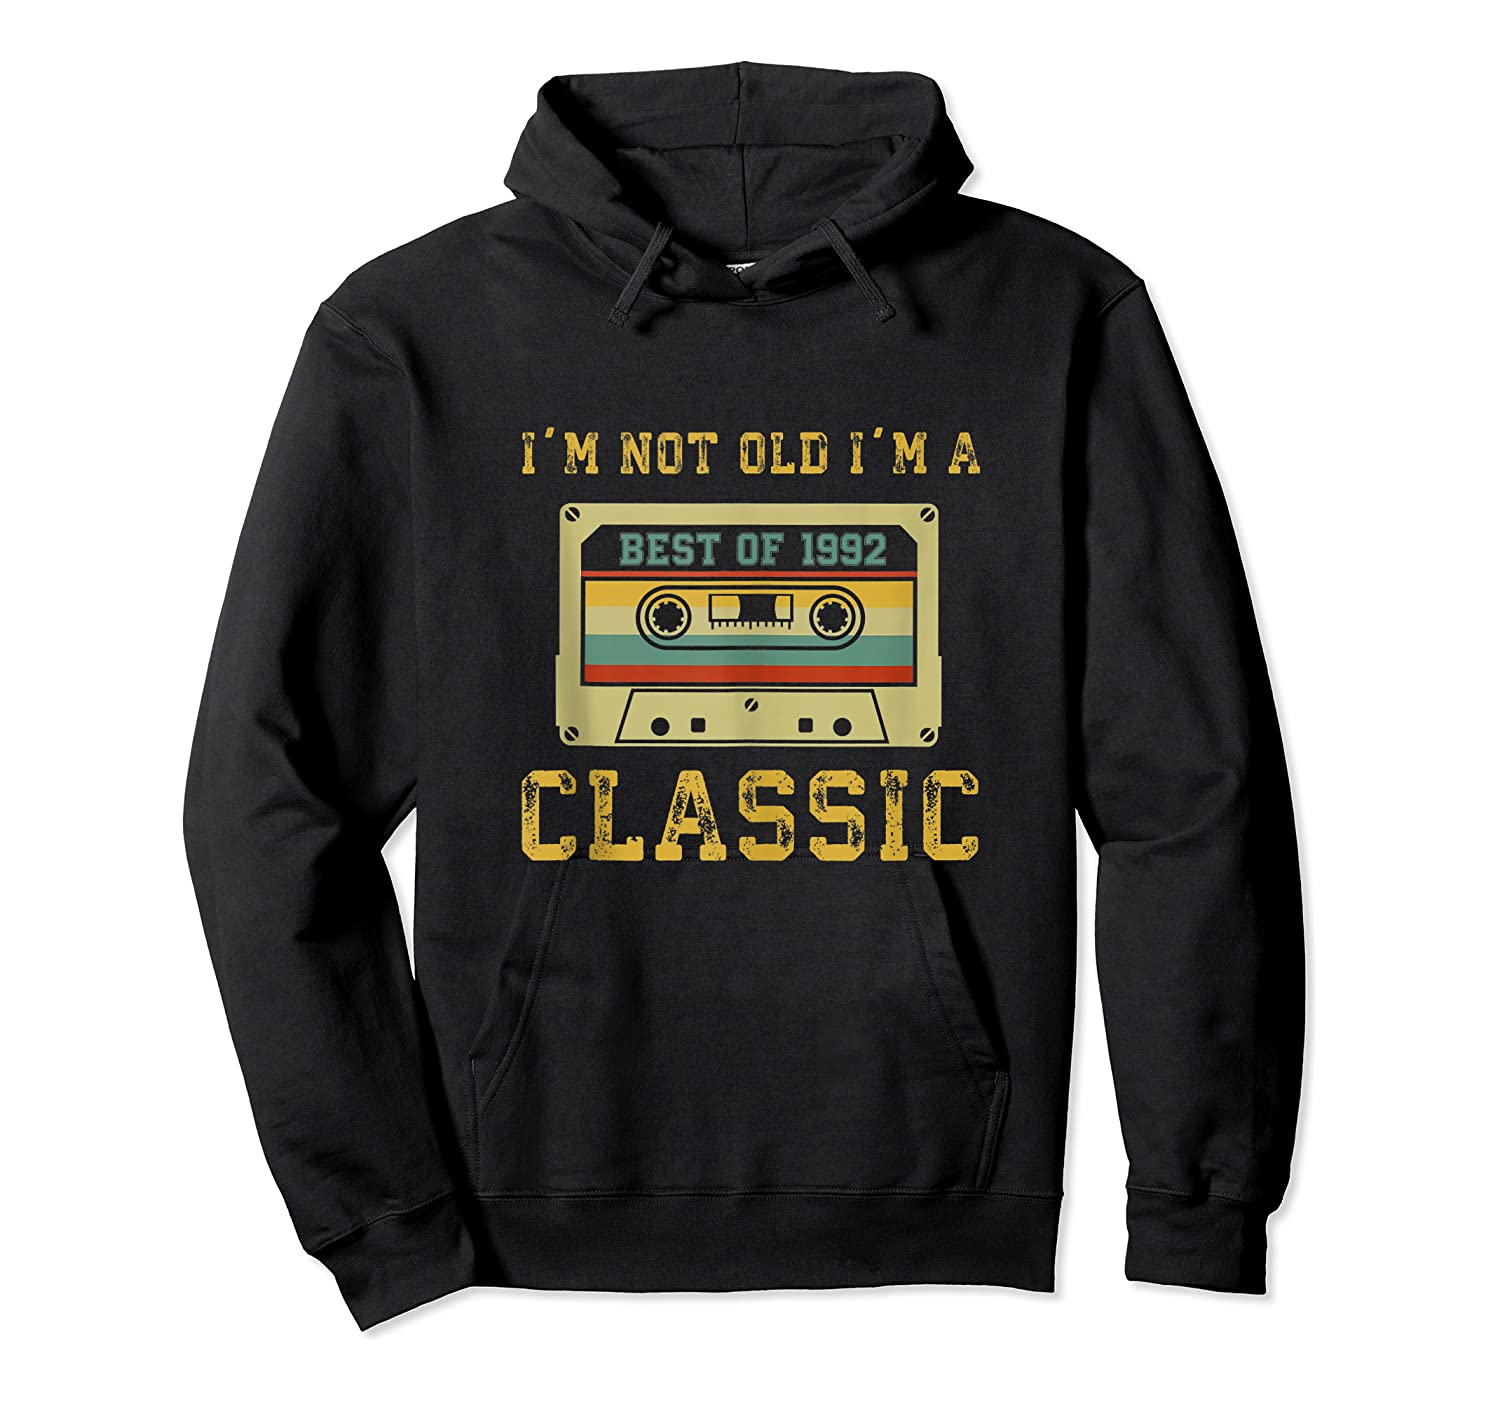 Vintage Cassette I'm Not Old I'm A Classic 1992 27th Tank Top Shirts Unisex Pullover Hoodie